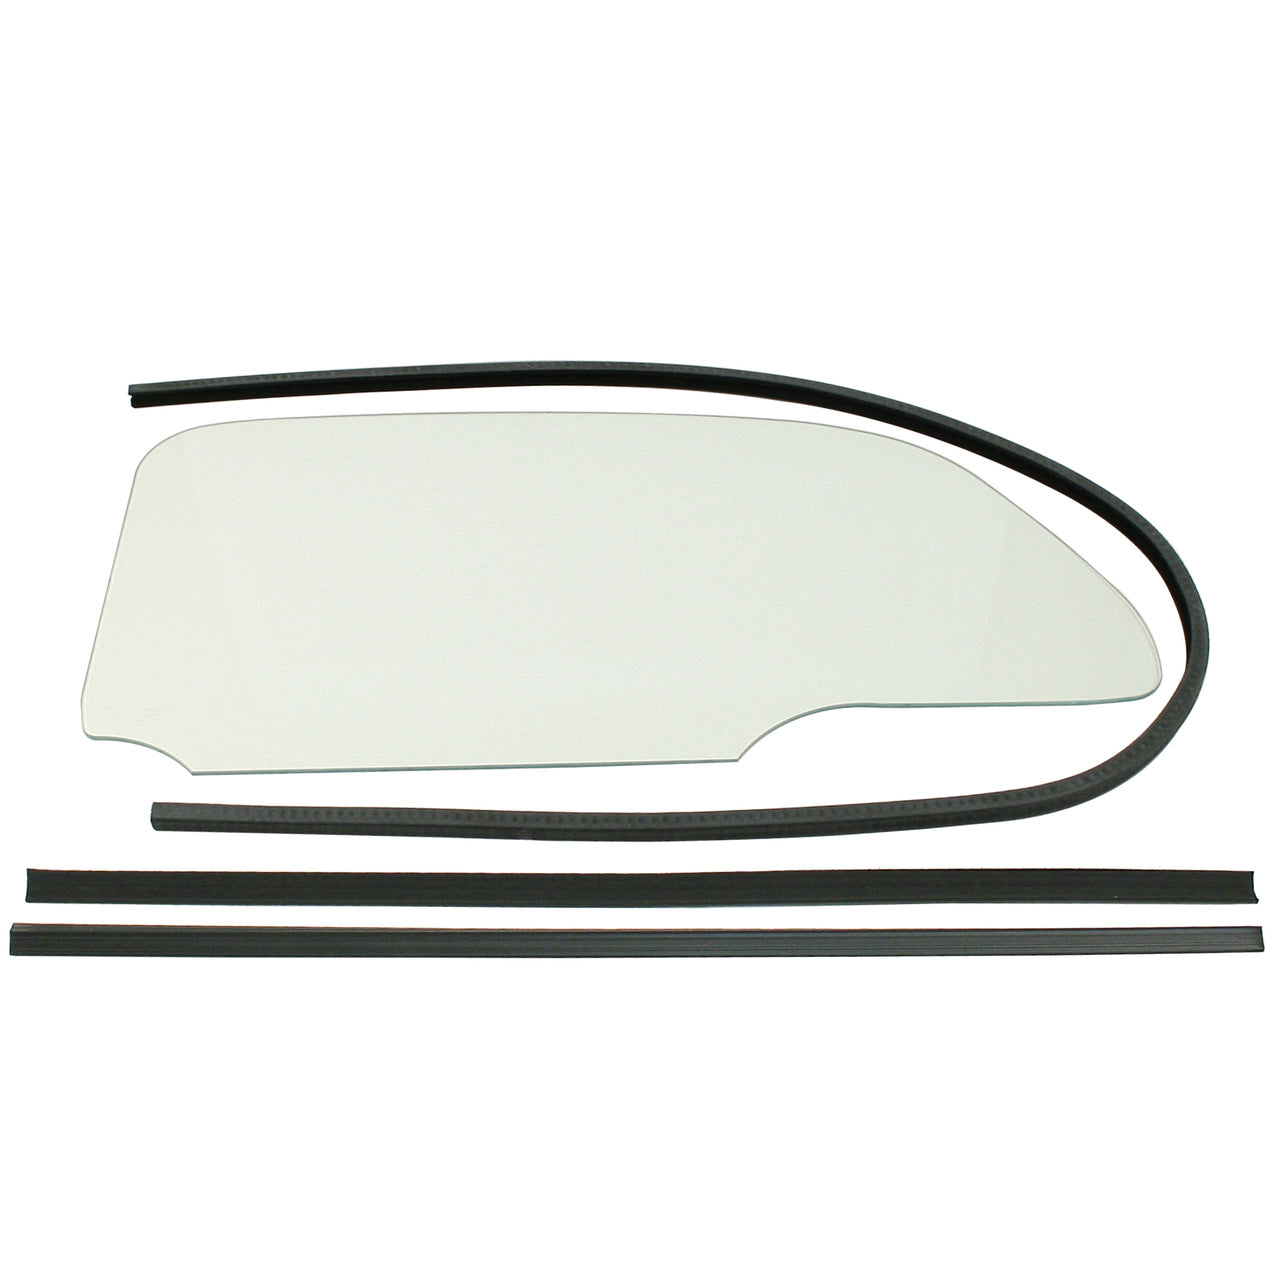 VW BUG 1 PIECE CLEAR WINDOW KIT WITH GLUE IN SCRAPERS 1958-64, PAIR